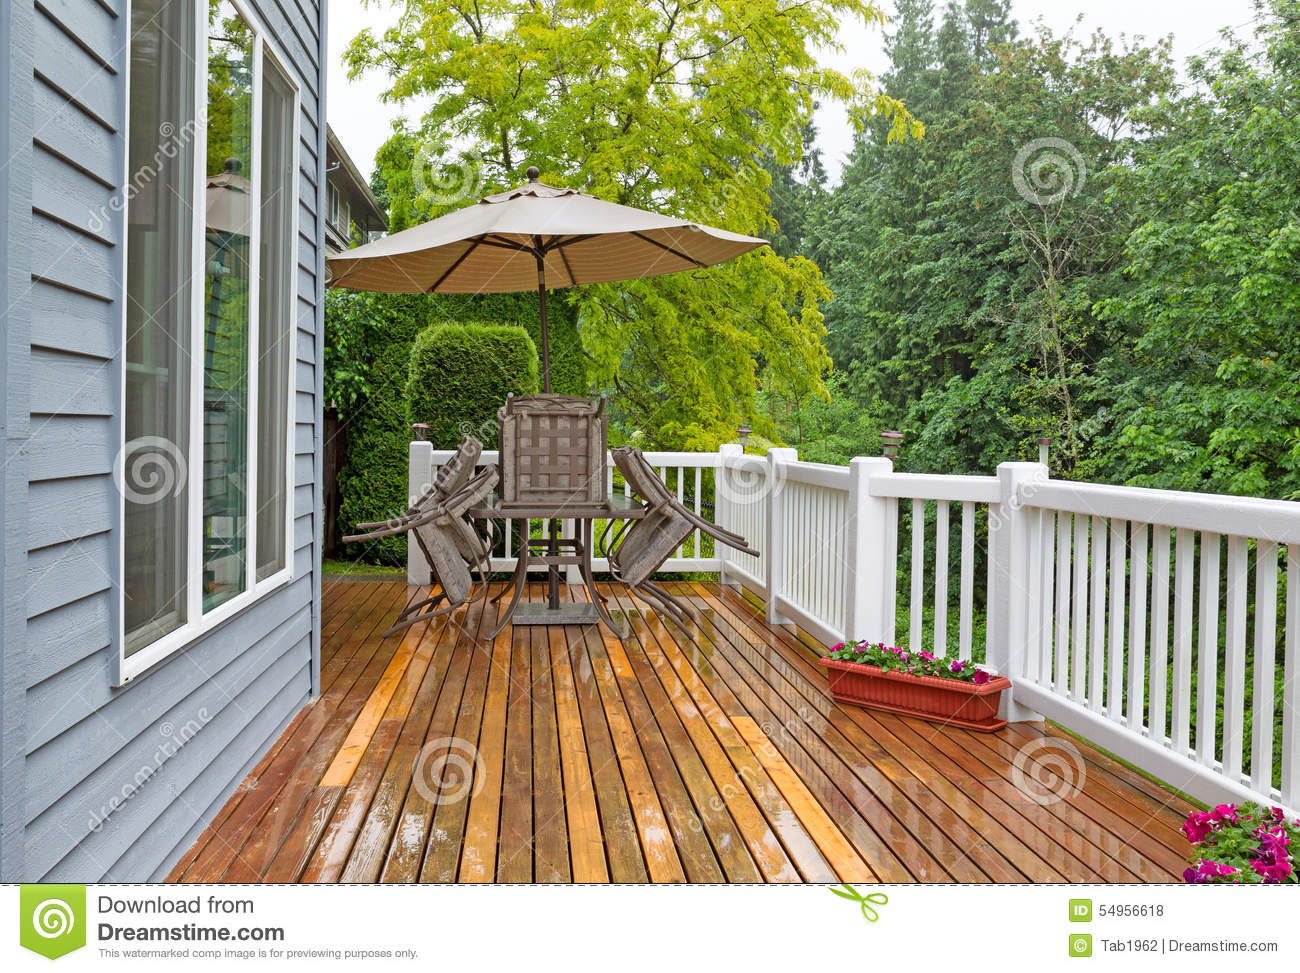 Outdoor Patio Closed Due To Heavy Rain Stock Photo Image Of Chairs Plants 54956618